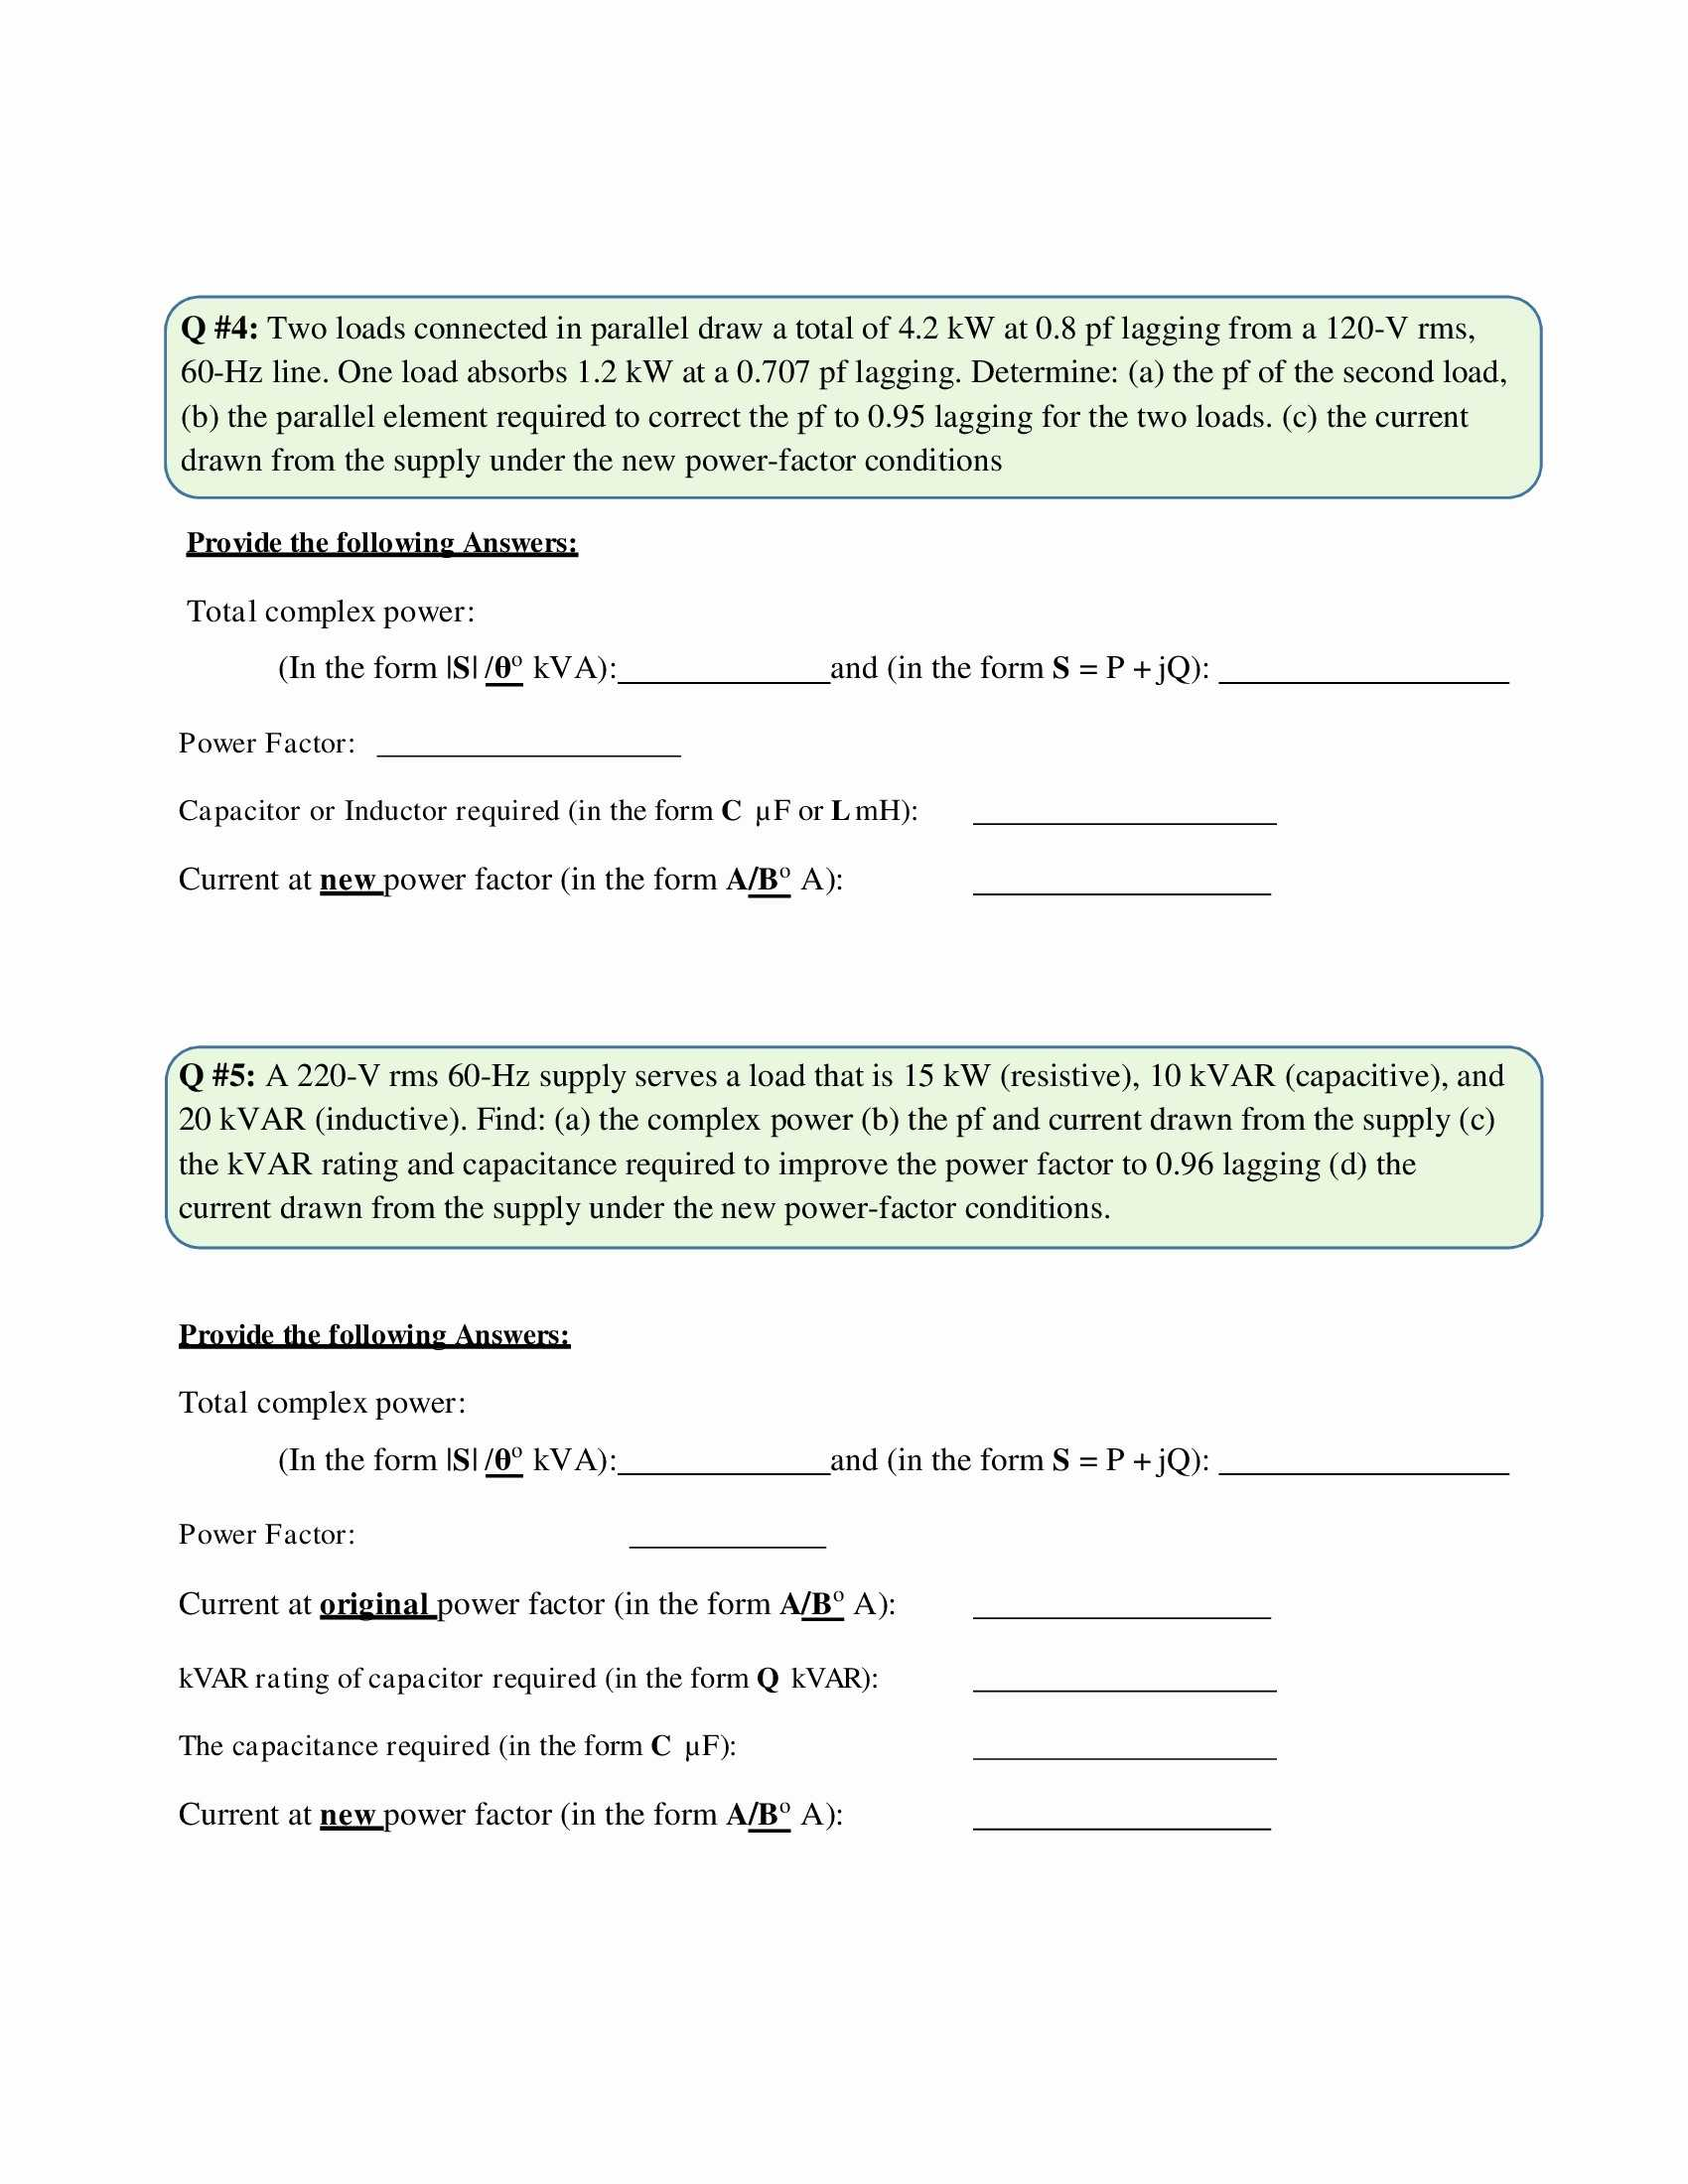 Power to A Power Worksheet Also Work and Energy Worksheet Answers Best 12 Lovely Work Energy and